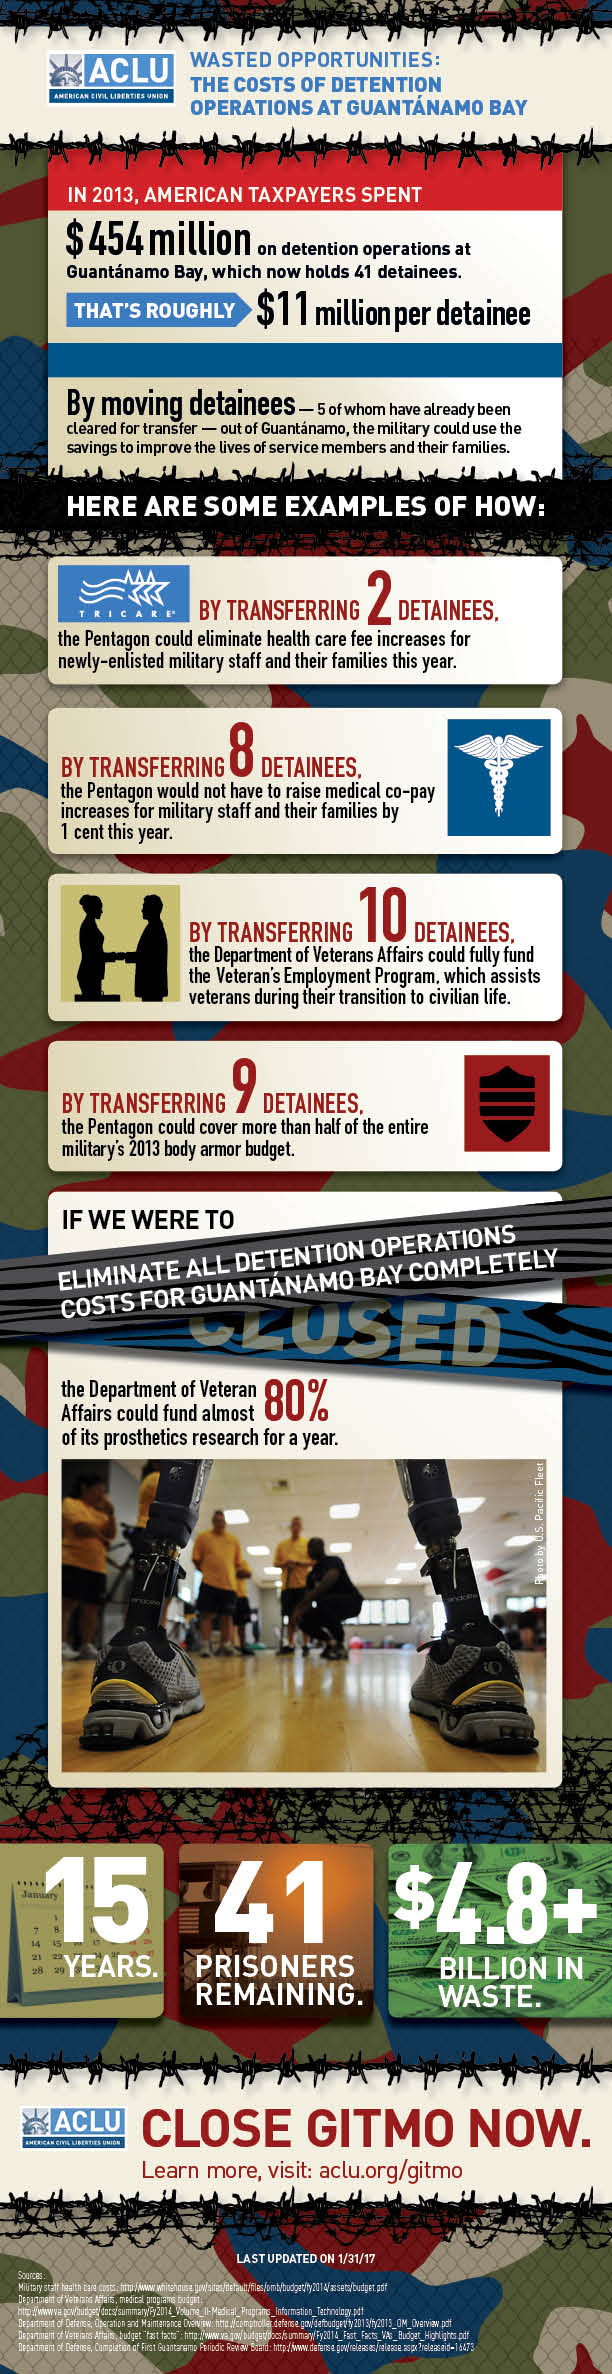 Wasted Opportunities: The Cost of Detention Operations at Guantánamo Bay